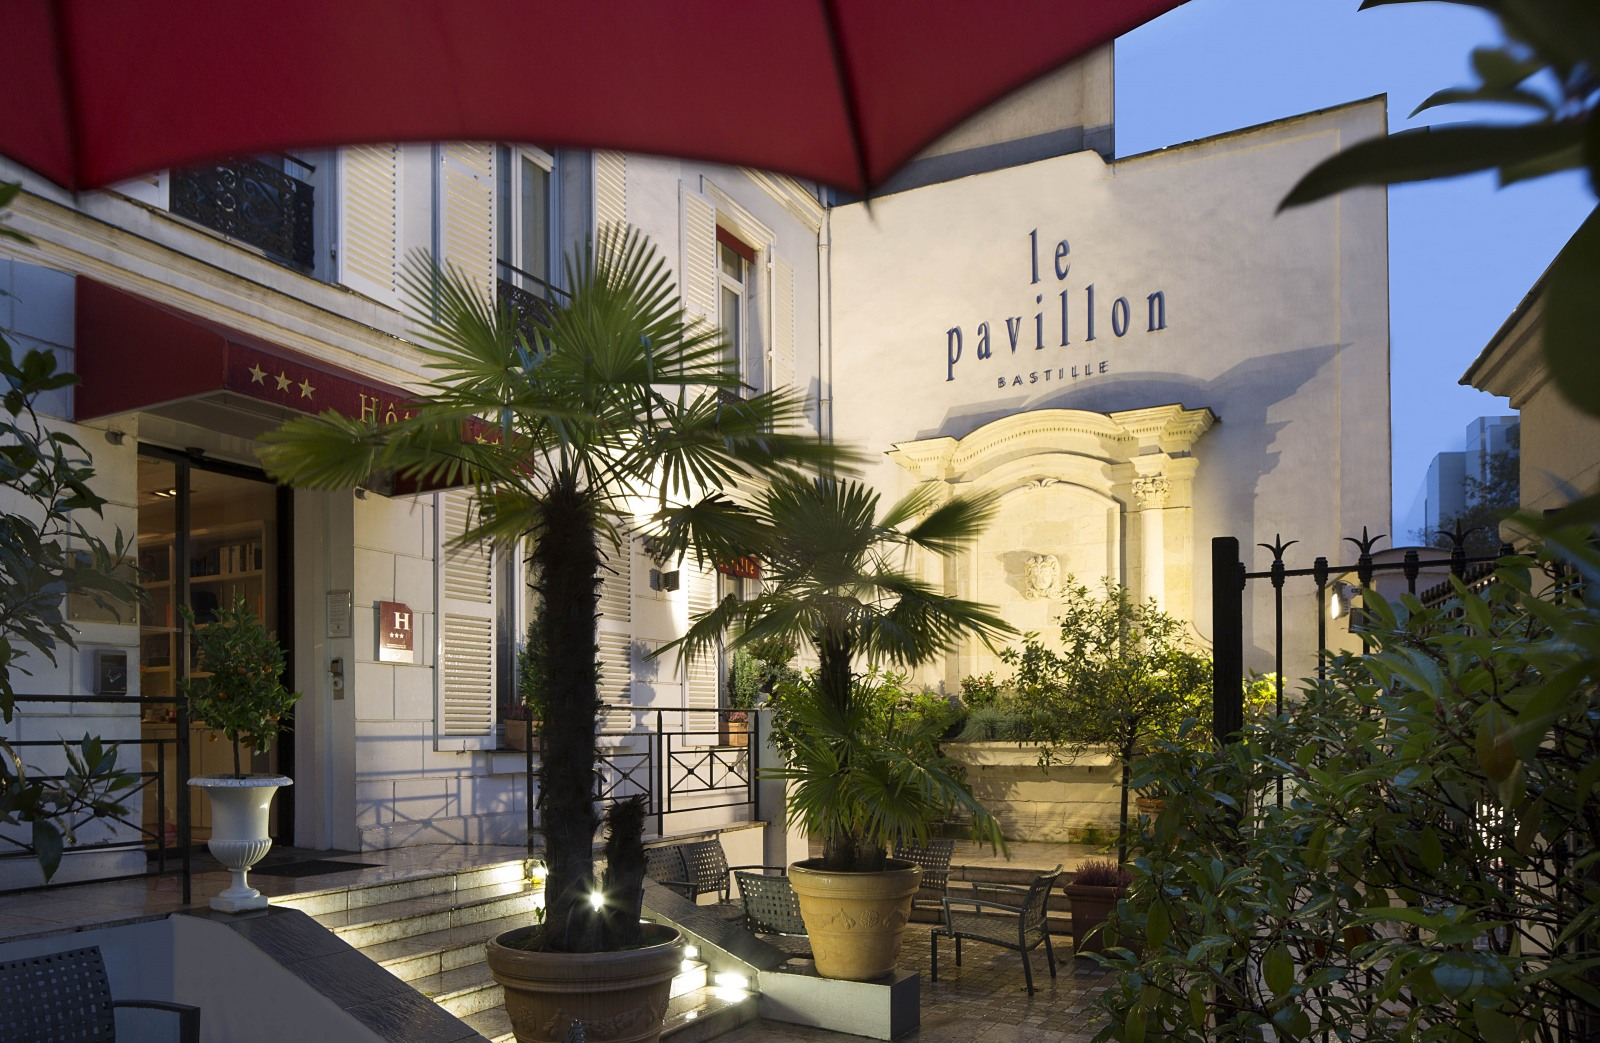 Hotel pavillon bastille site officiel hotels paris for Bastille hotel